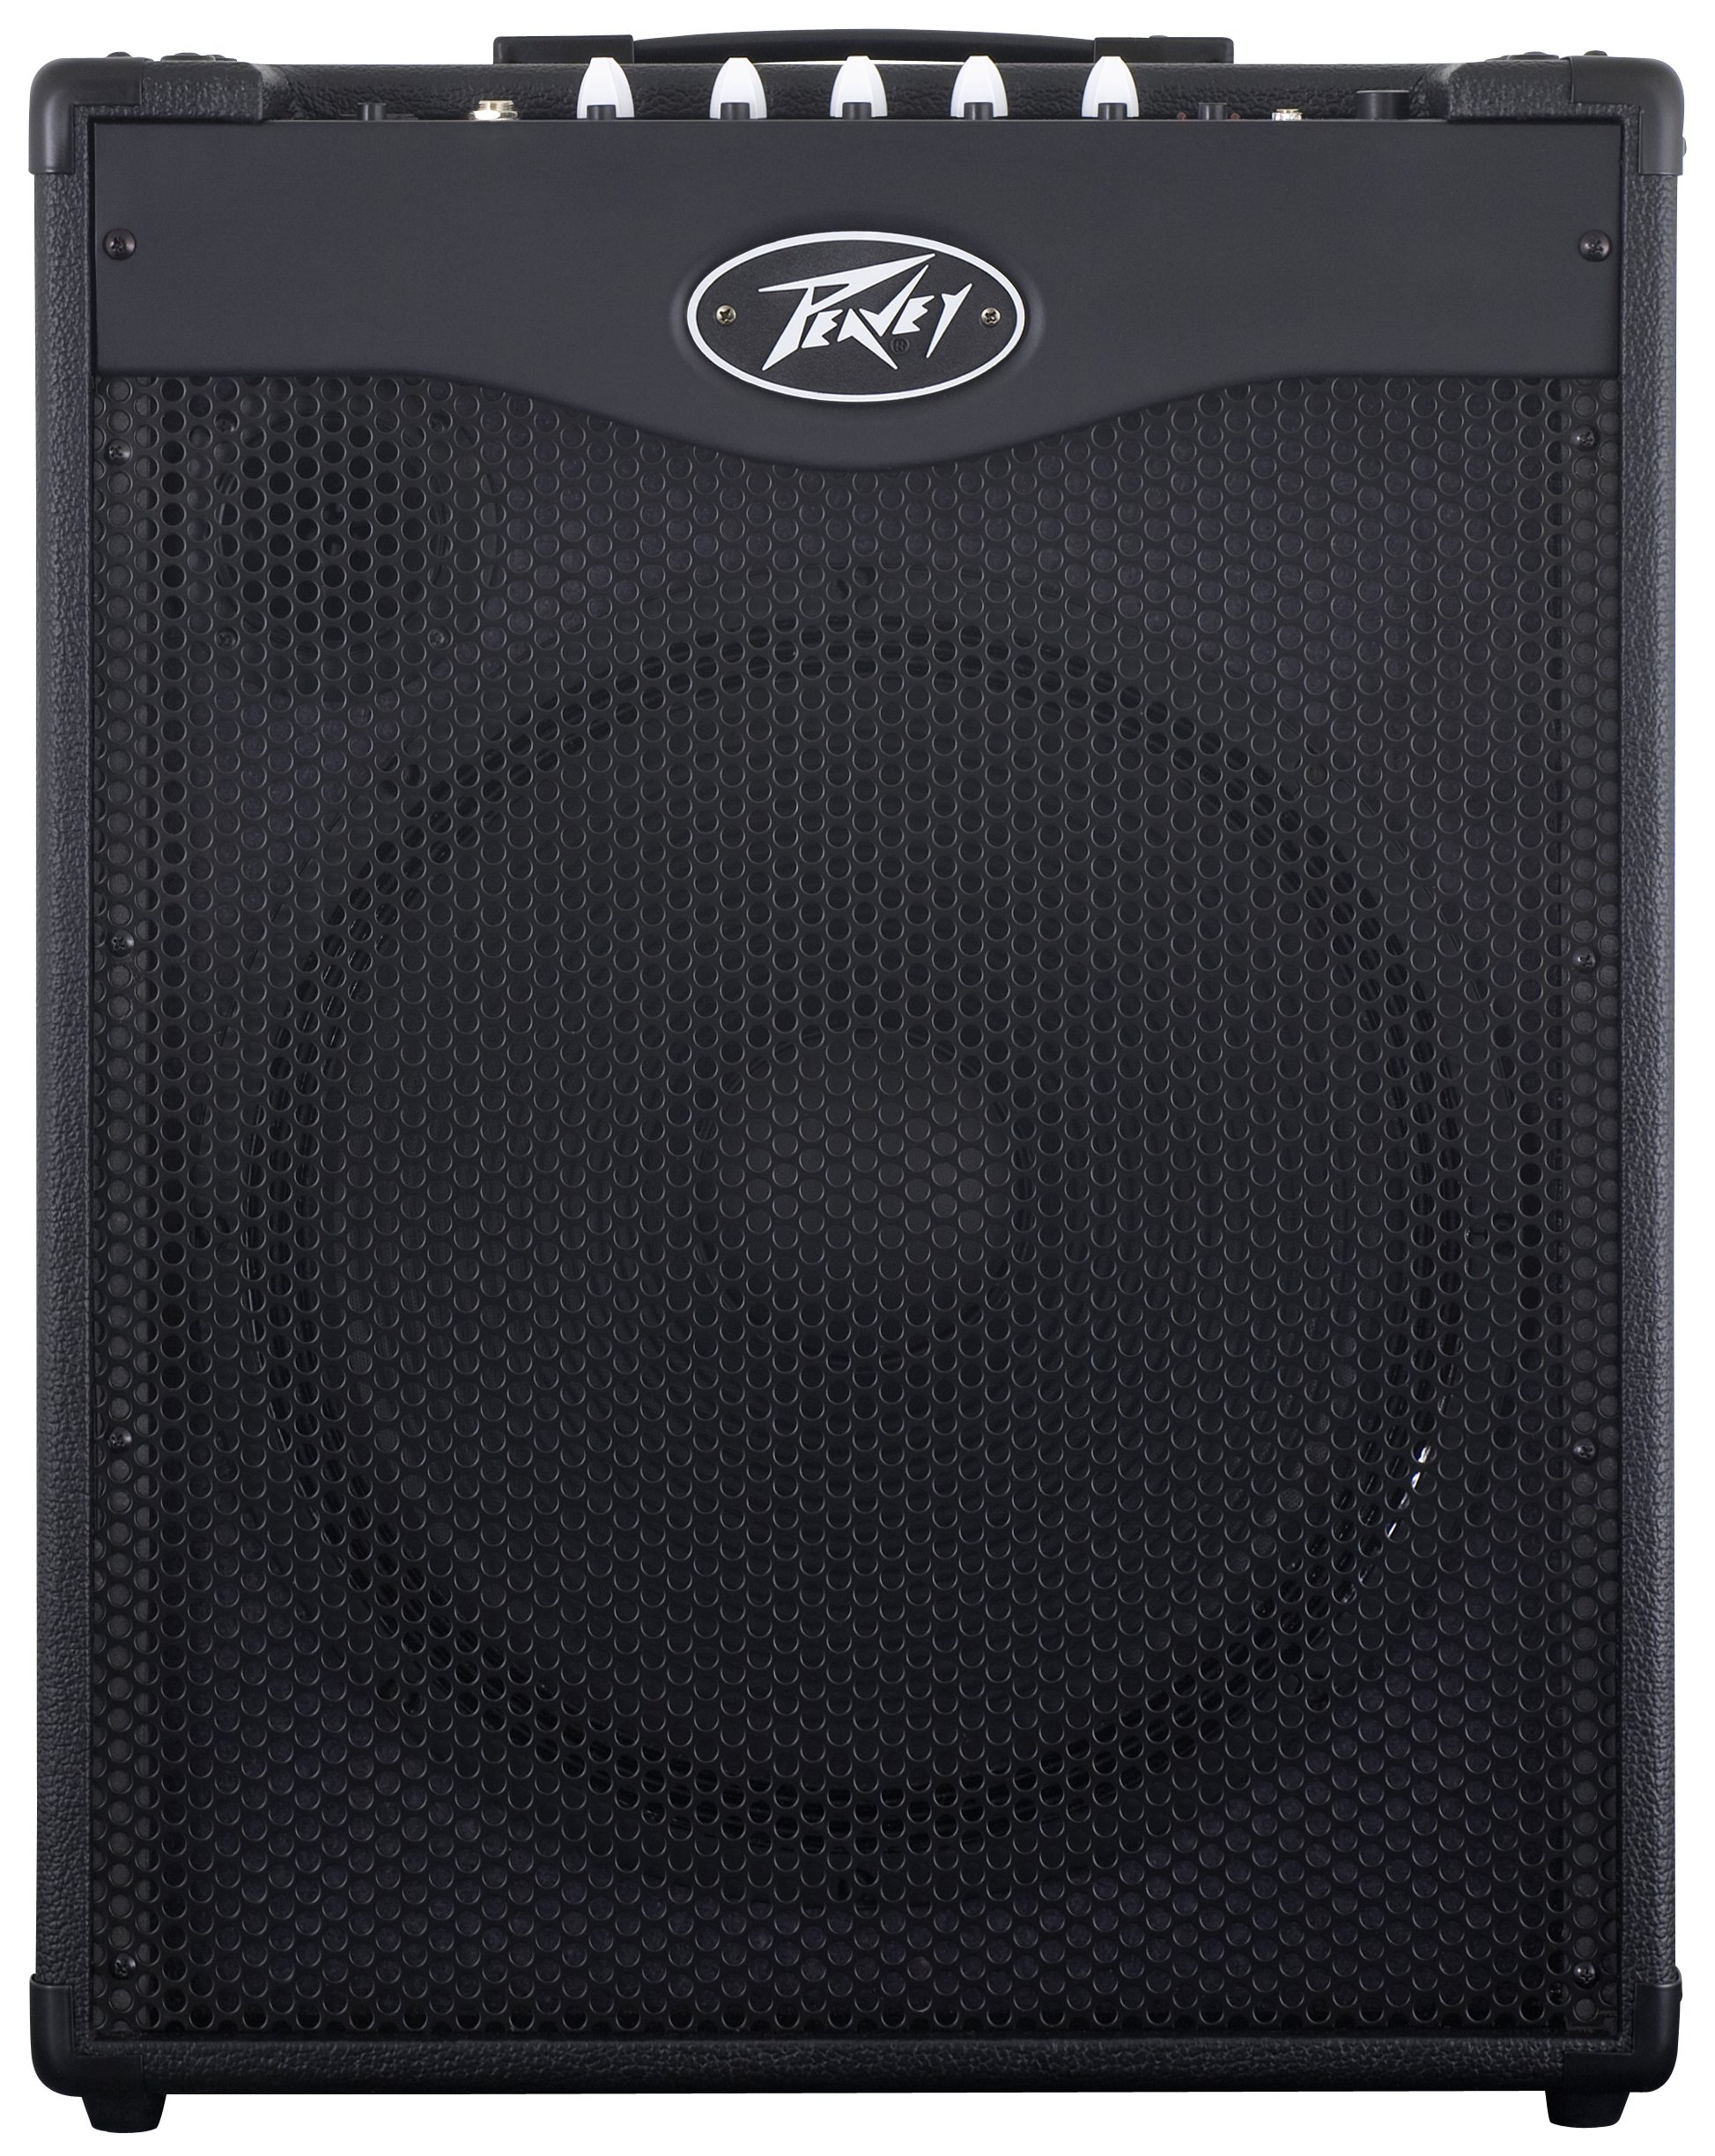 Peavey Electronics Max Series 03608210 Max 115 Bass Combo Amplifier by Peavey